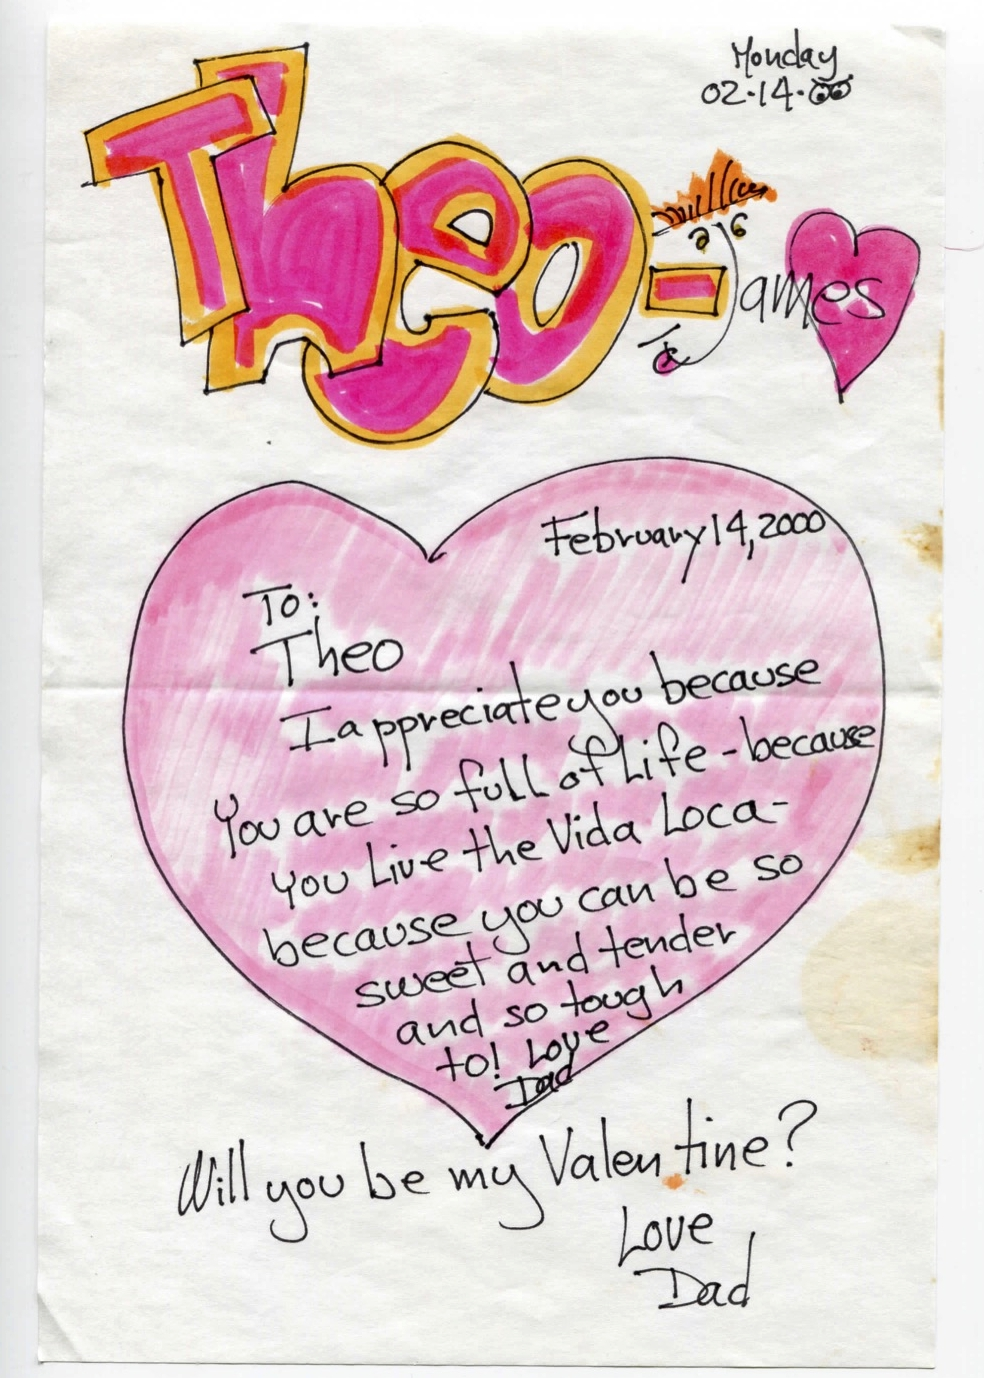 To: Theo  I appreciate you because you are so full of life - because you live the Vida Loca - because you can be so sweet and tender and so tough too! Love, dad  Will you be my Valentine?